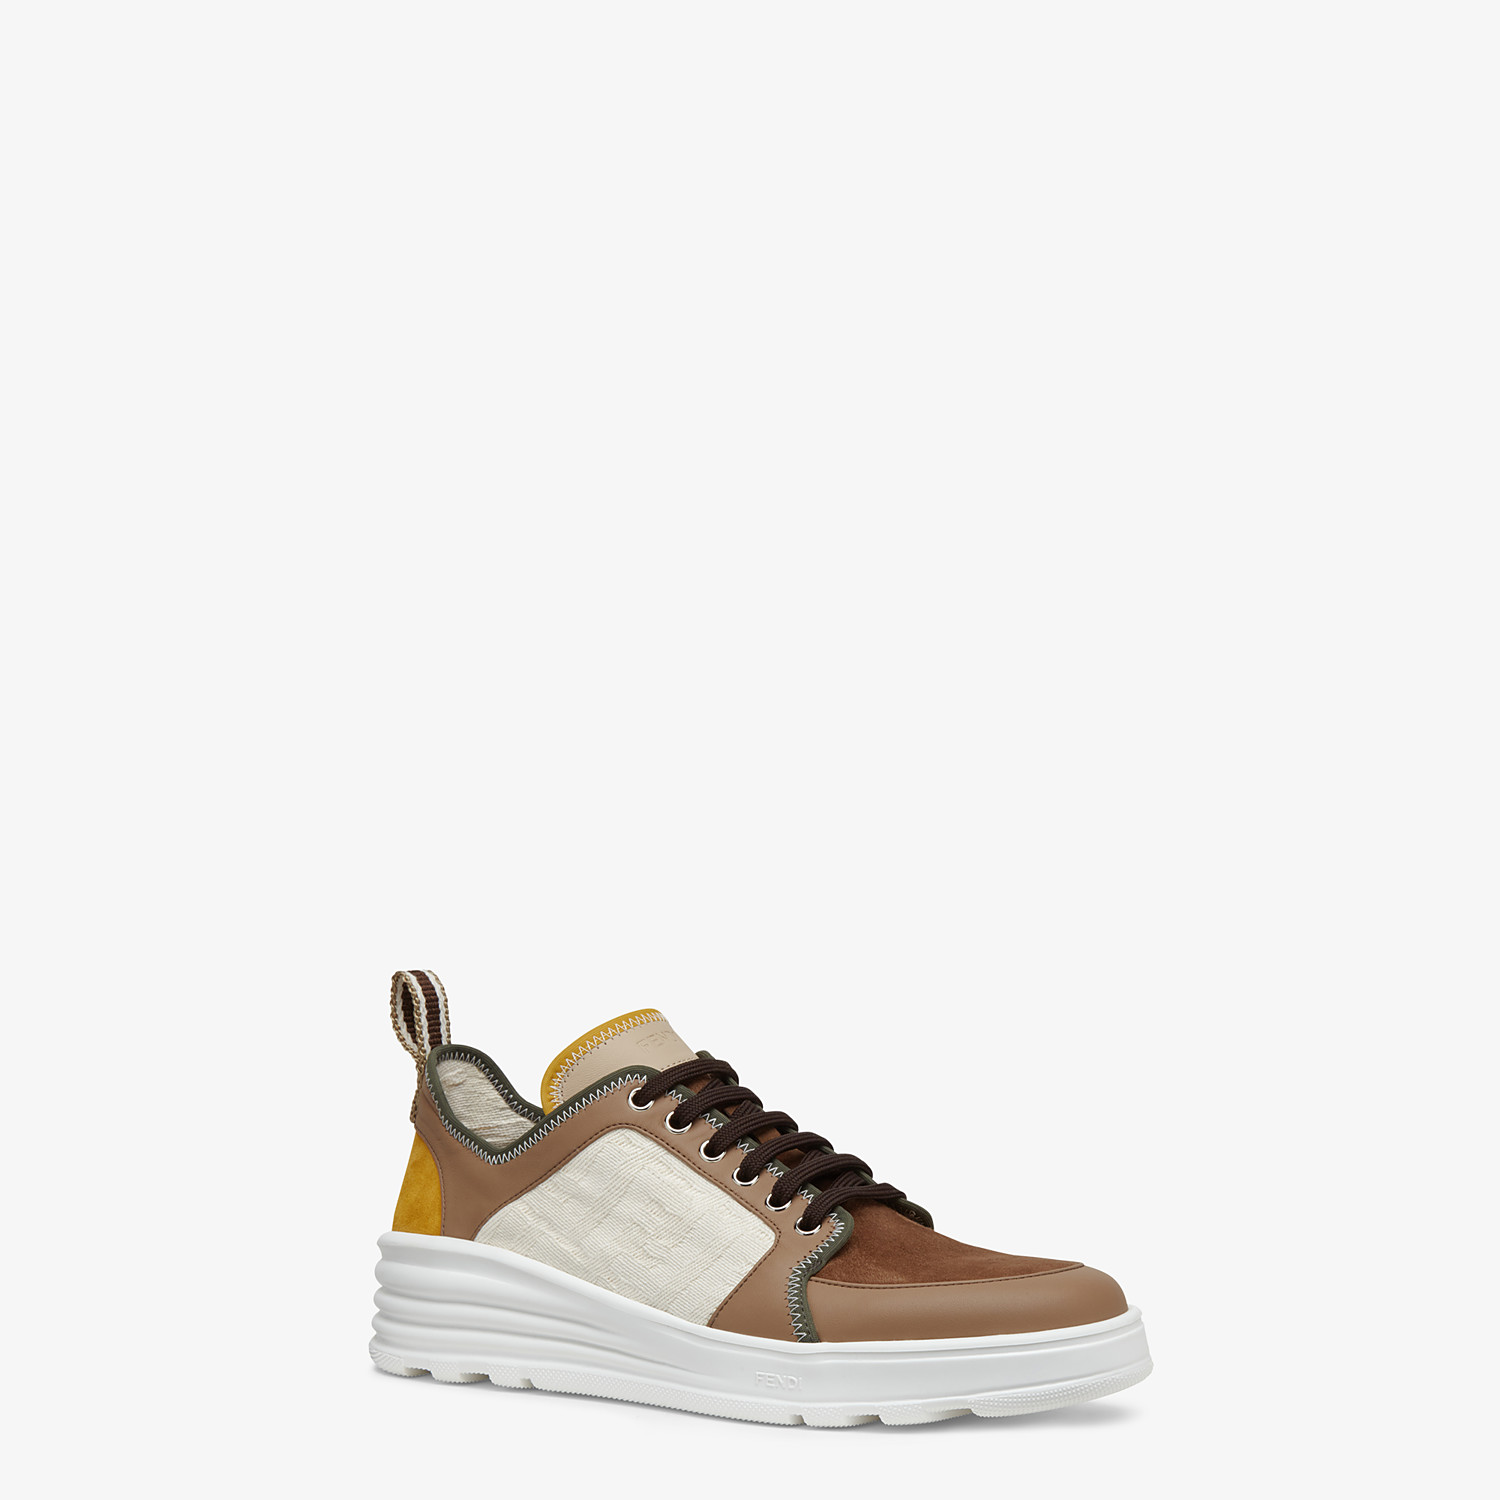 FENDI SNEAKERS - Multicolour leather and suede low-tops - view 2 detail